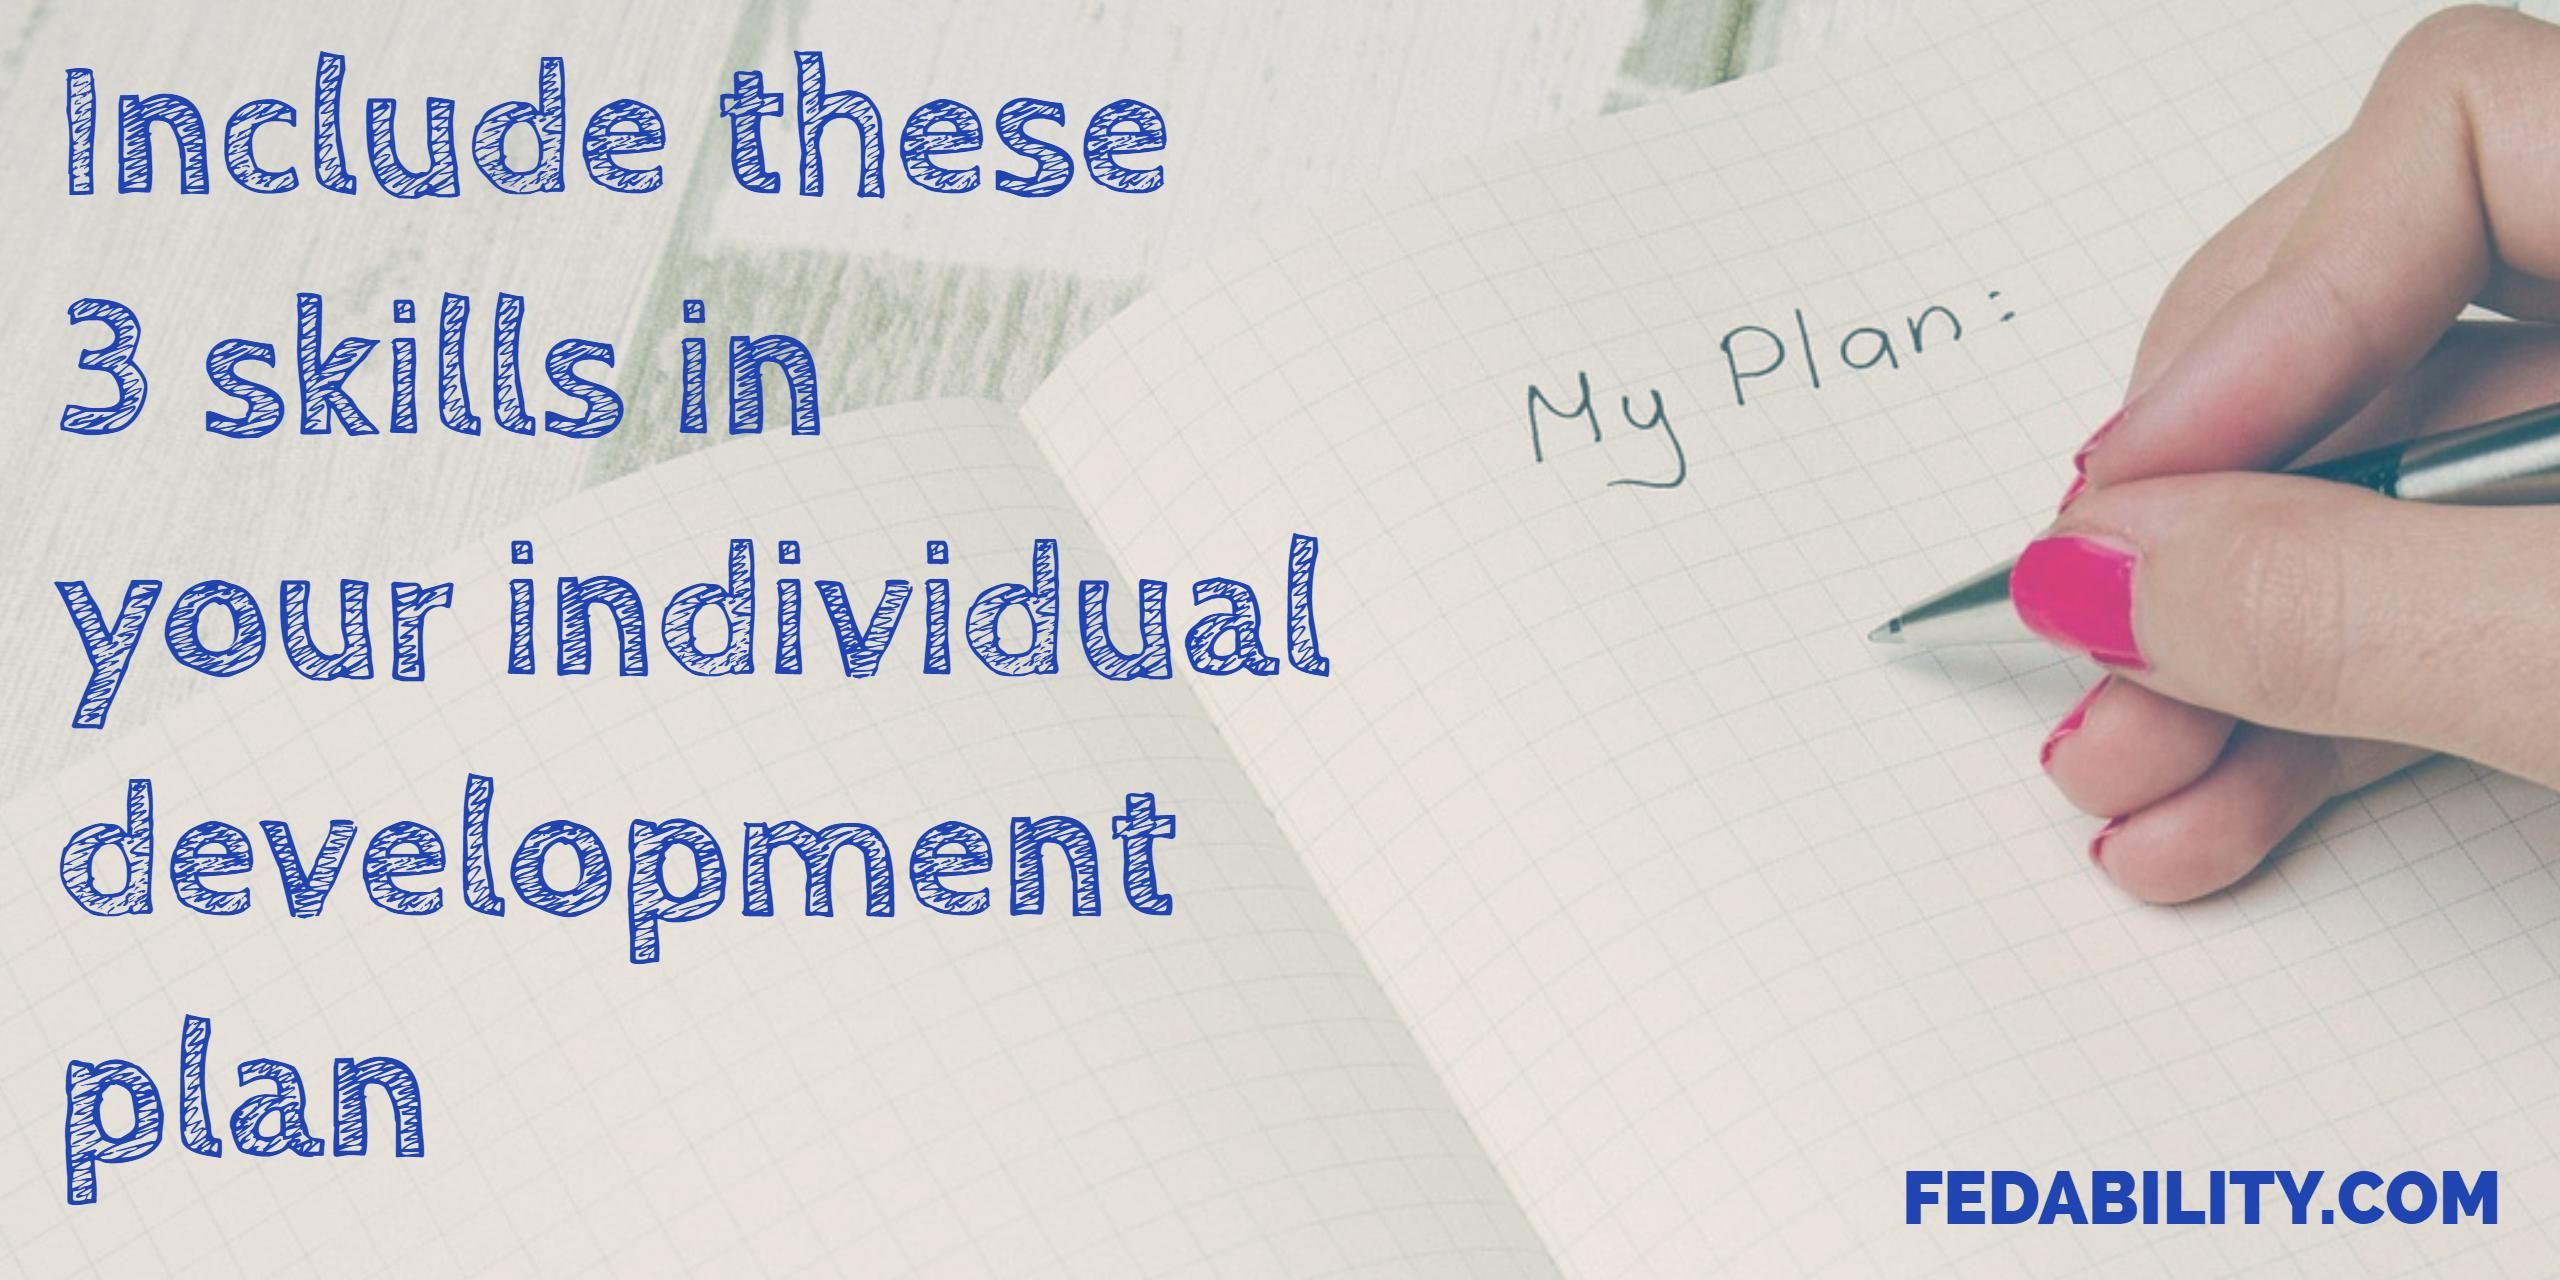 Make sure to include these three skills in your professional development goals & individual development plan (IDP). Technical, professional, problem-solving